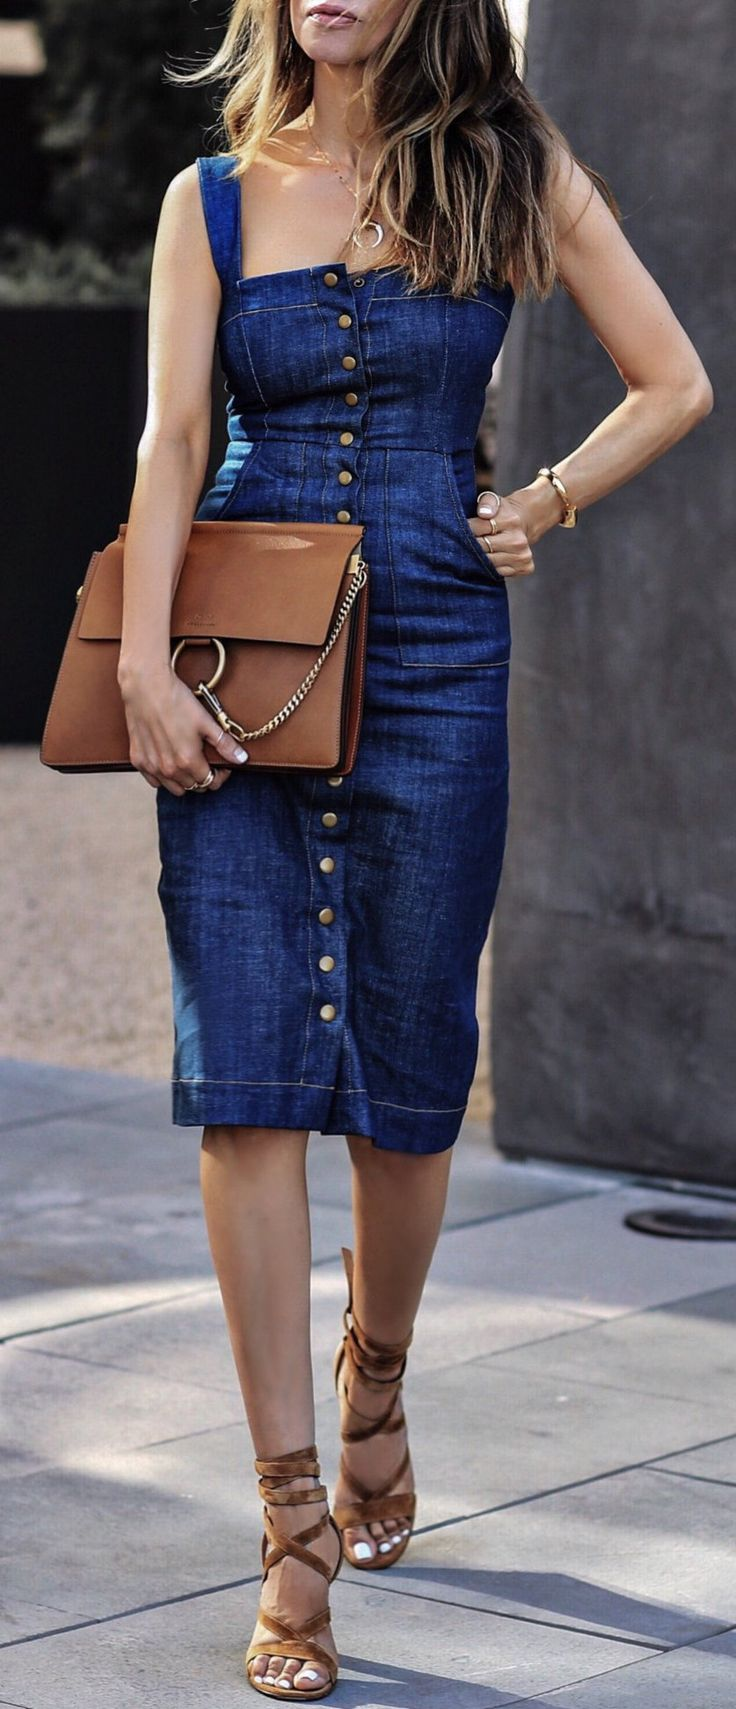 I used to have this same dress!!!!!! I need it back!!!!!   #summer #outfits  OOTD #denim  Navy Midi Dress + Brown Clutch Bag + Brown Sandals